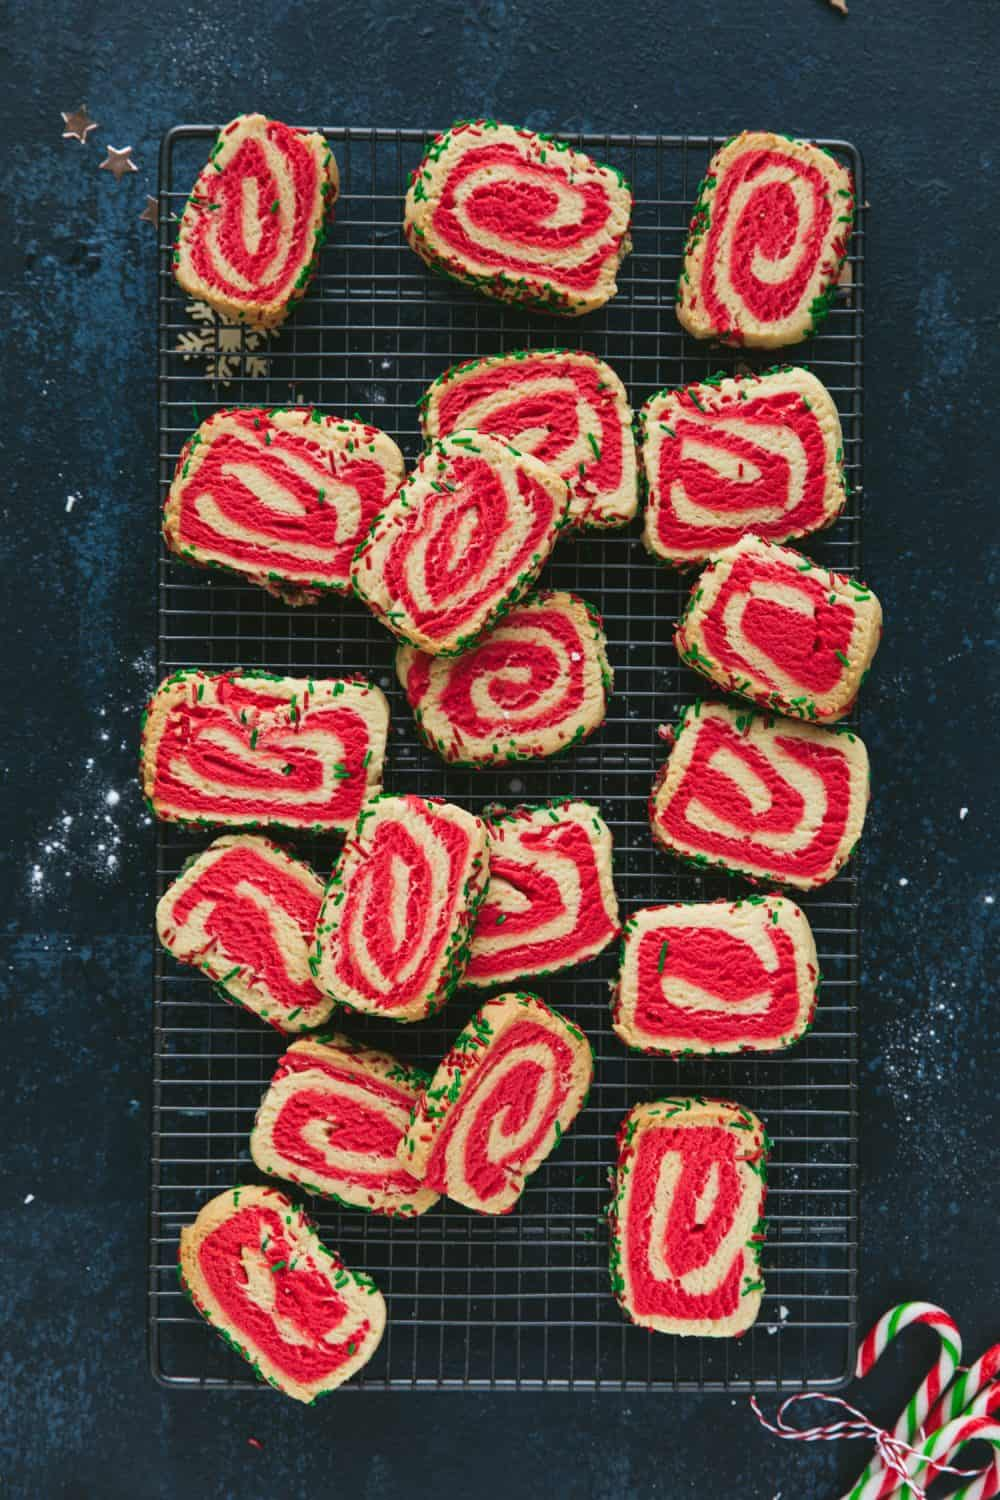 Red and white swirl biscuits on a baking rack.